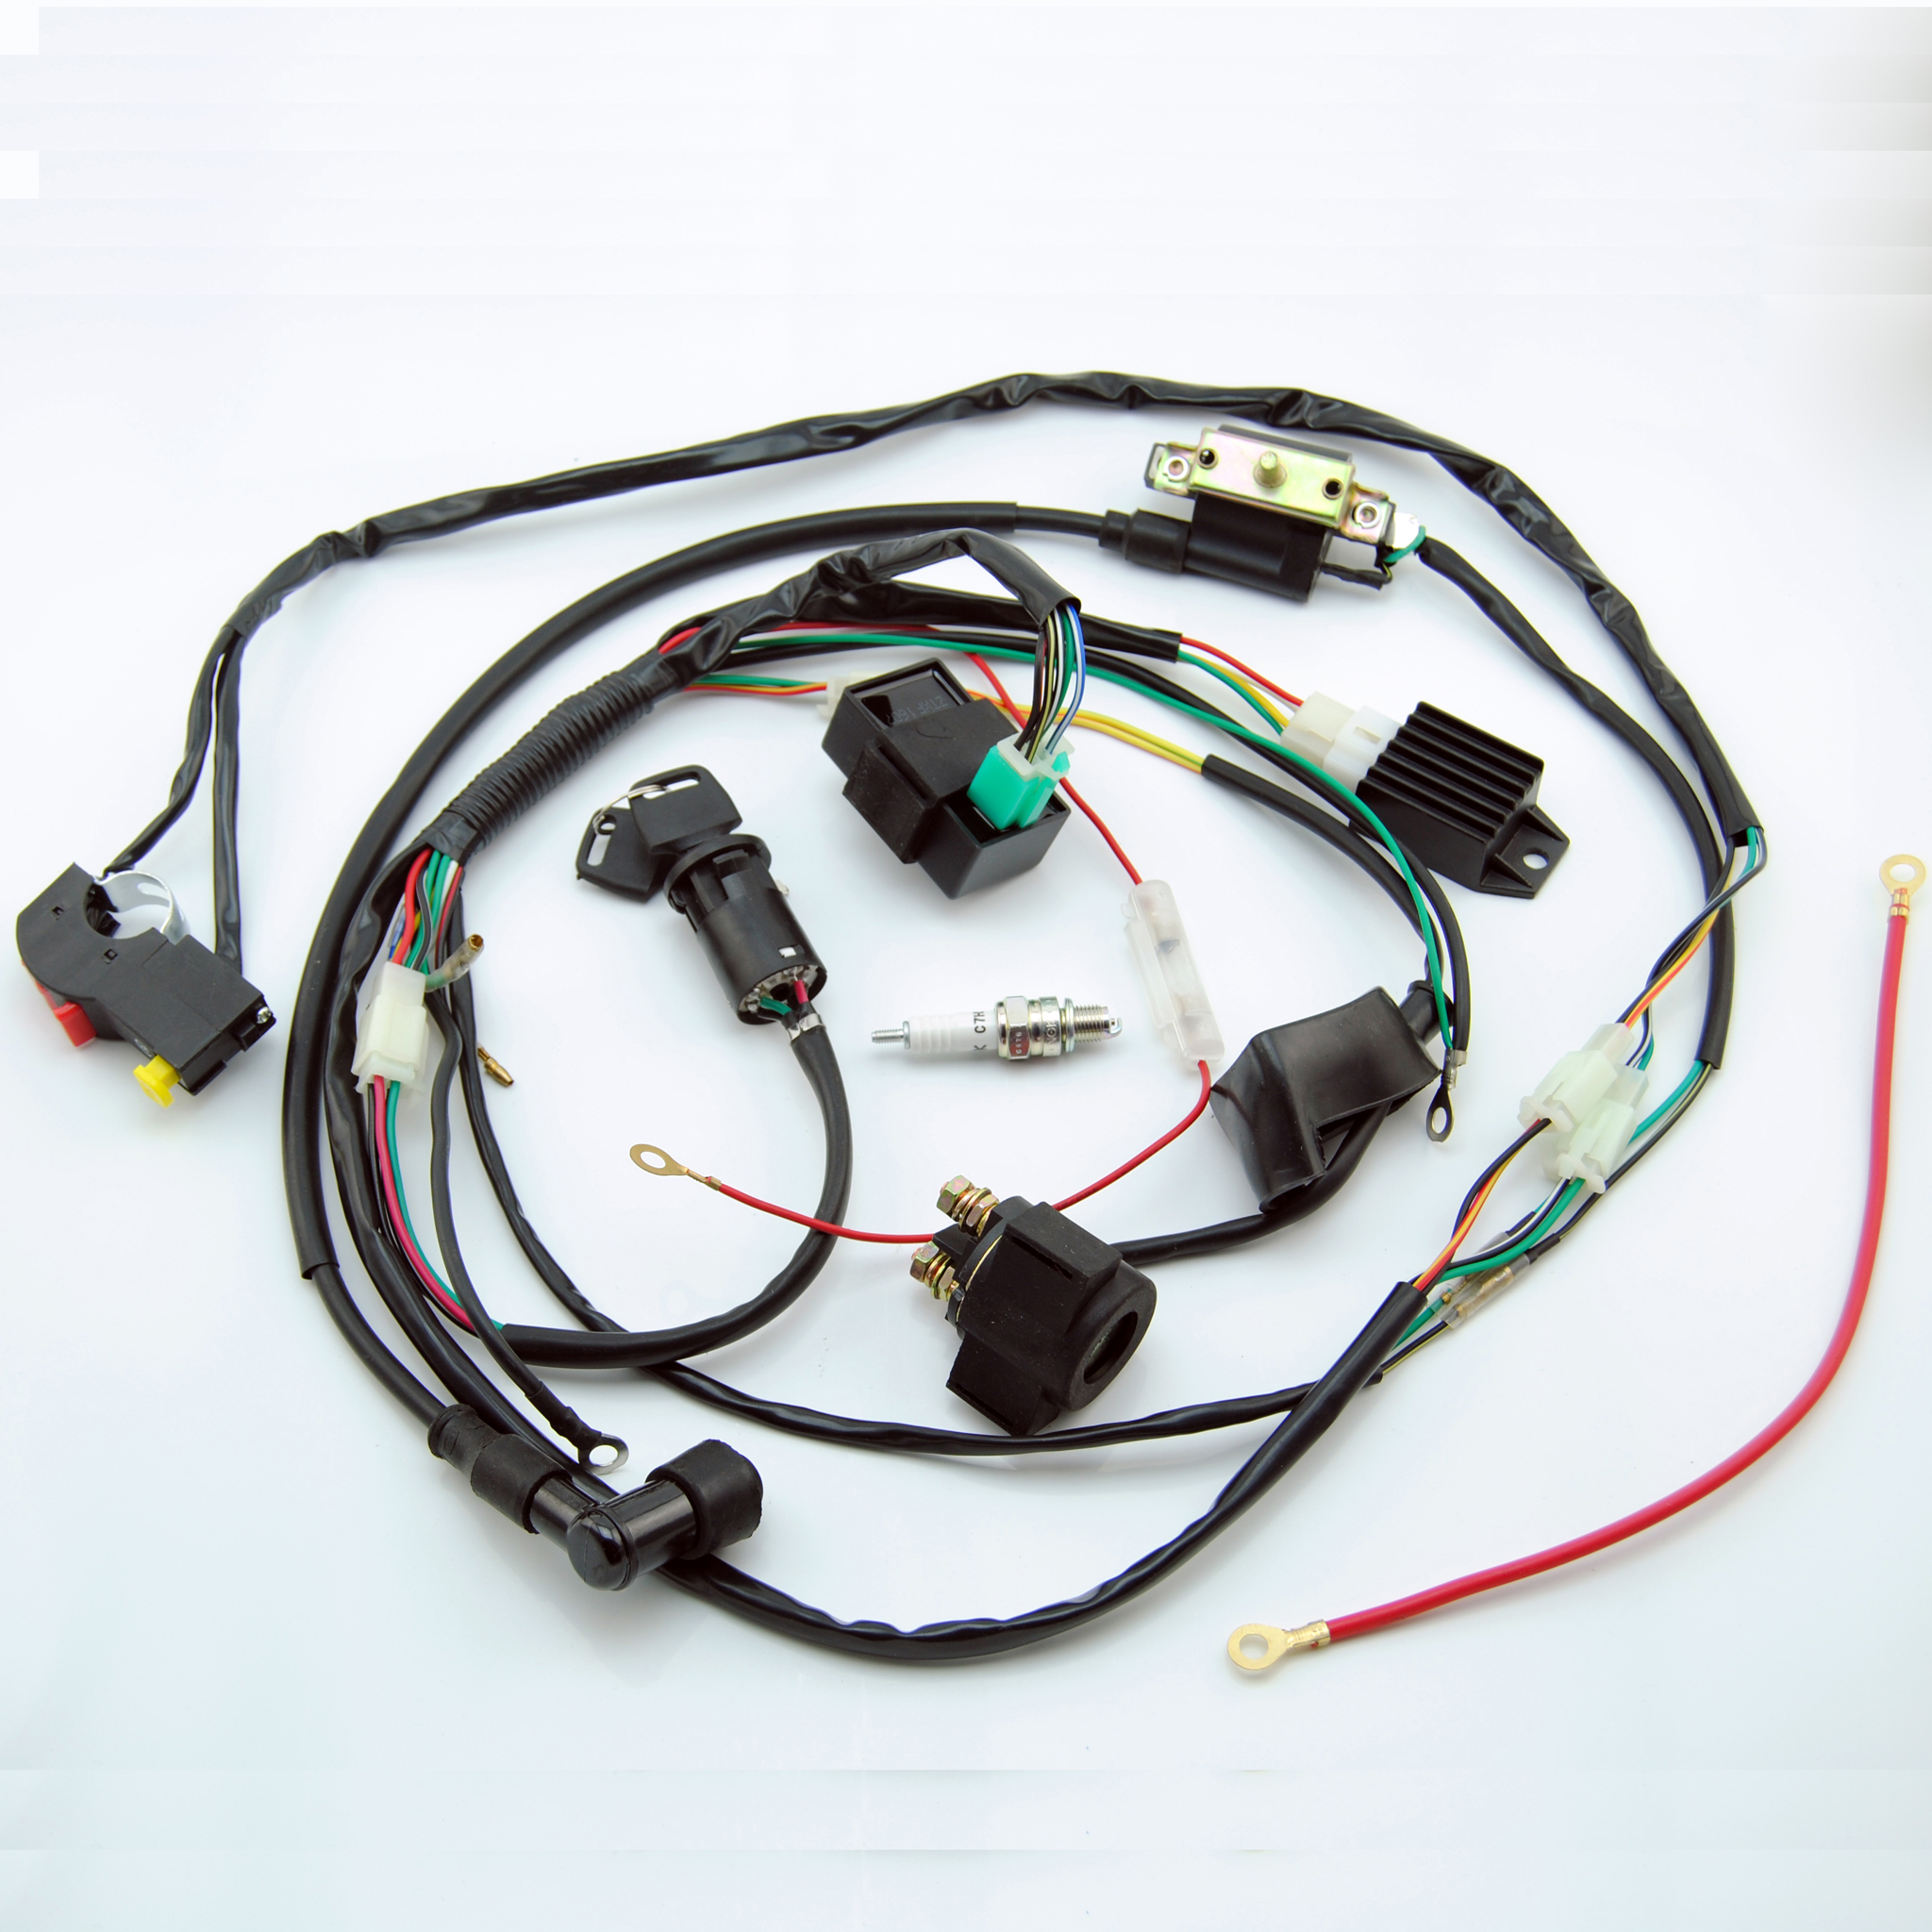 small resolution of complete electric start engine wiring harness loom 110 125cc quad bike atv buggy free shipping